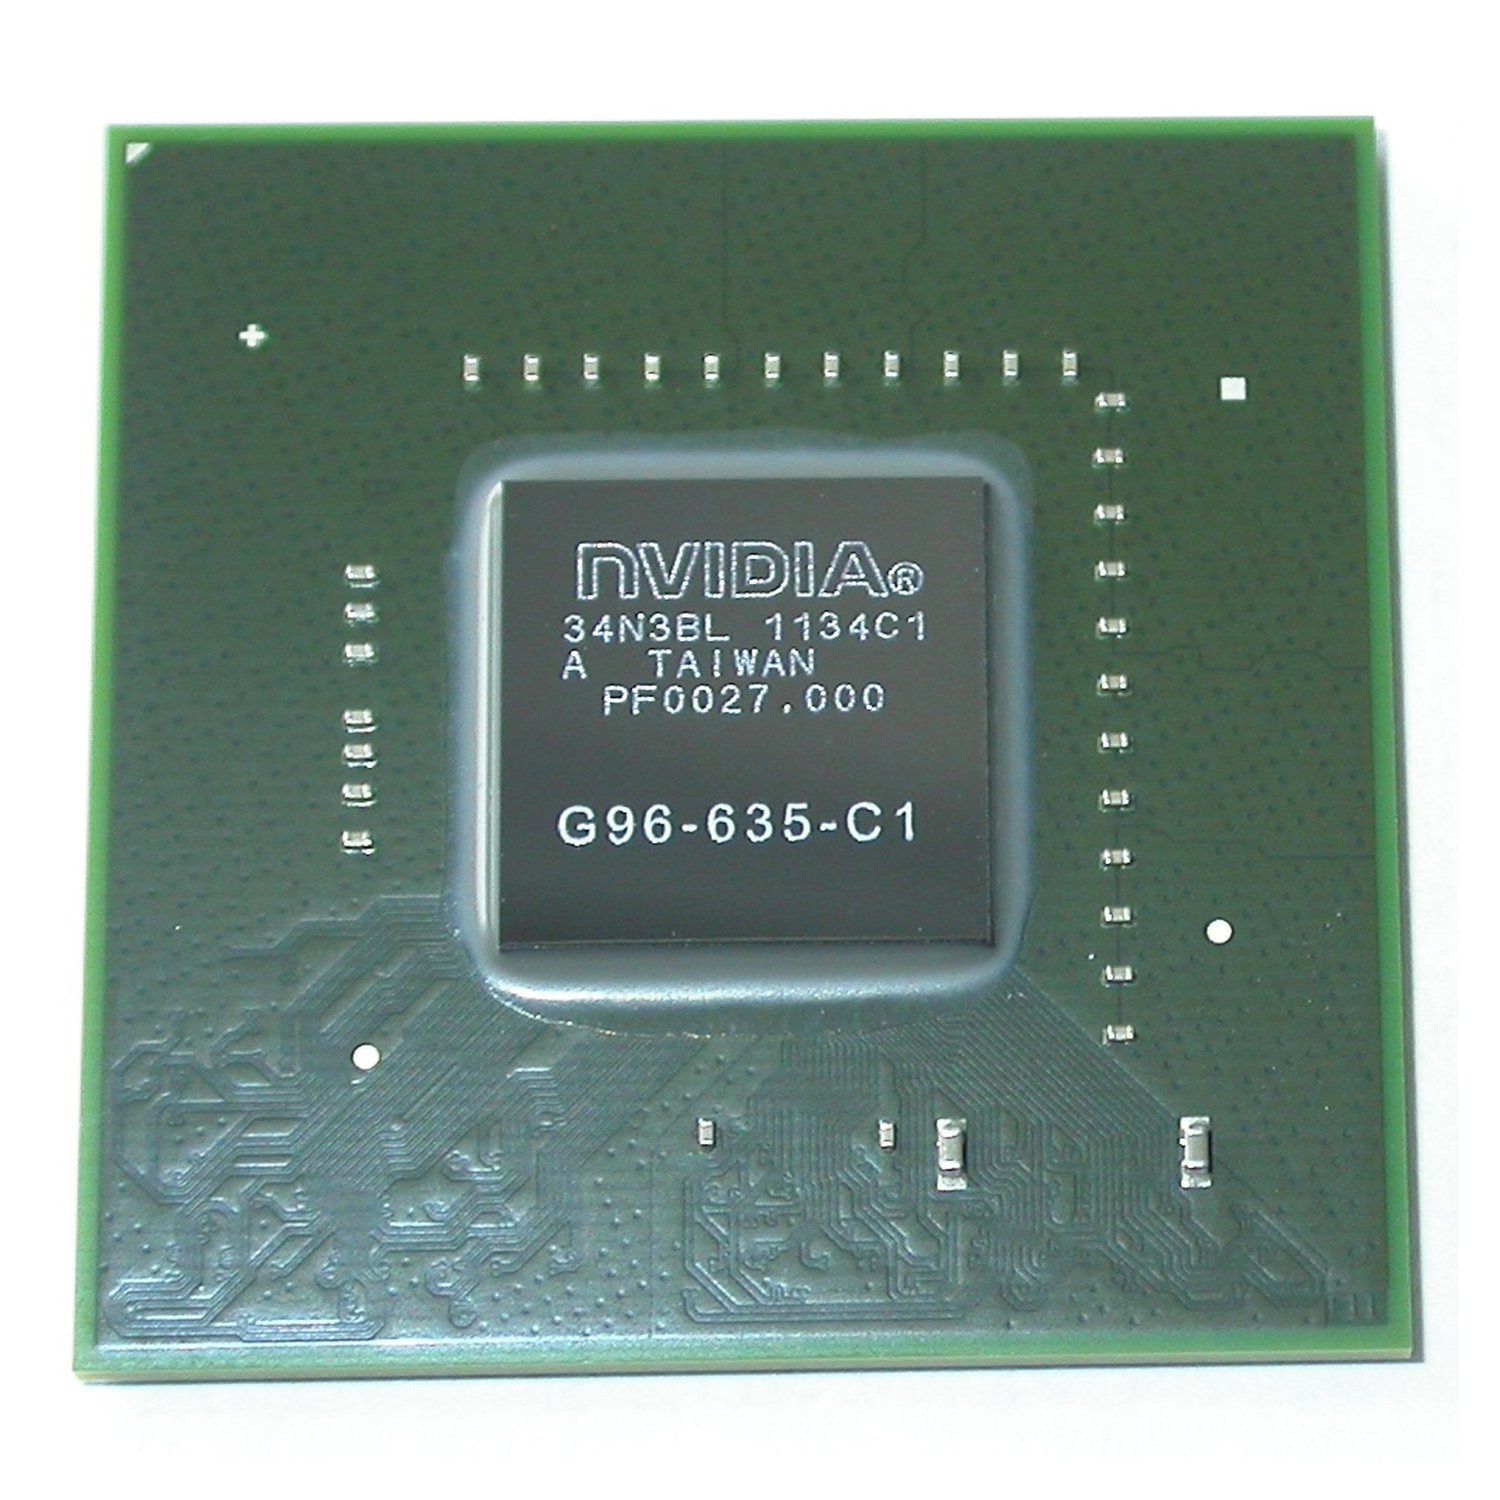 Chipset Club G96-635-C1 IC Chip for GeForce 9600M GT